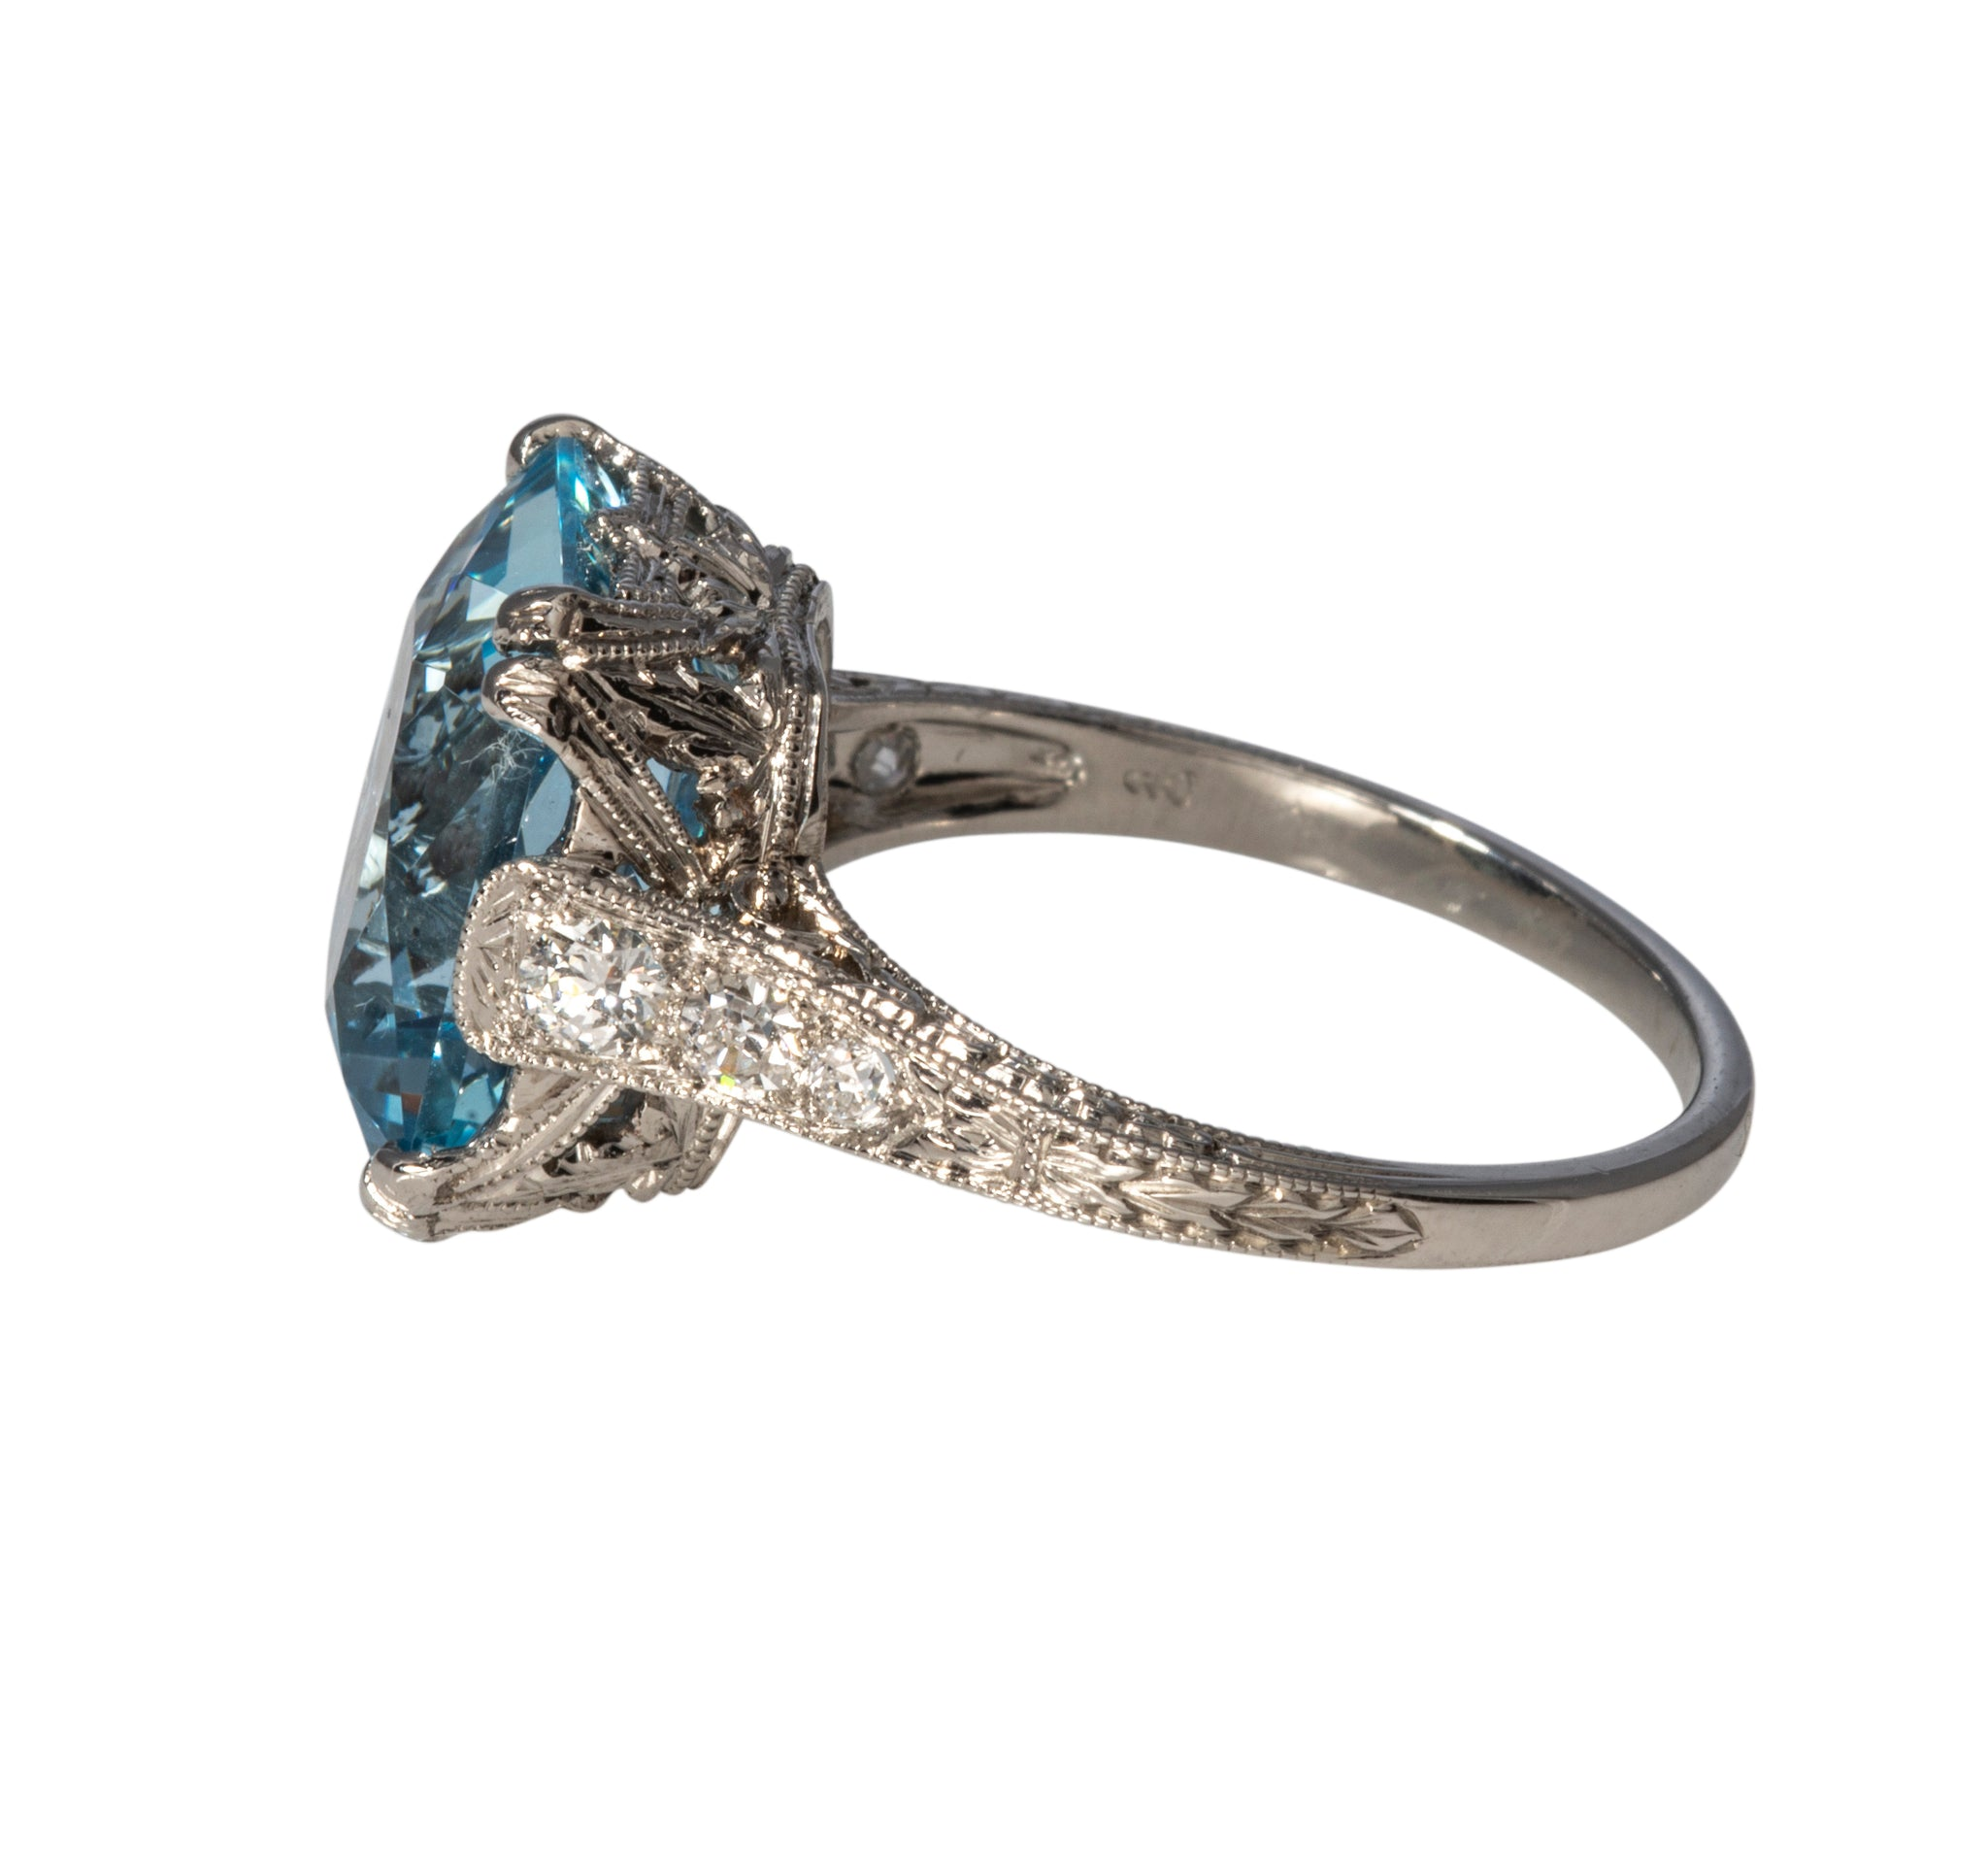 From our estate & antique collection, this Edwardian style ring features a cushion-cut aquamarine center secured by prongs. The center stone is flanked by graduated Old European cut diamonds on either side. The platinum mounting features ornate pierced filigree, milgrain, and a squared edge shank with hand engraving.  Total aquamarine weight: 5.53ct  Color: medium light, slightly grayish-blue  Clarity: eye clean  Total diamond weight: 0.38ct  Color: F  Clarity: VS  Ring size: 5.75  Weight: 5.2g